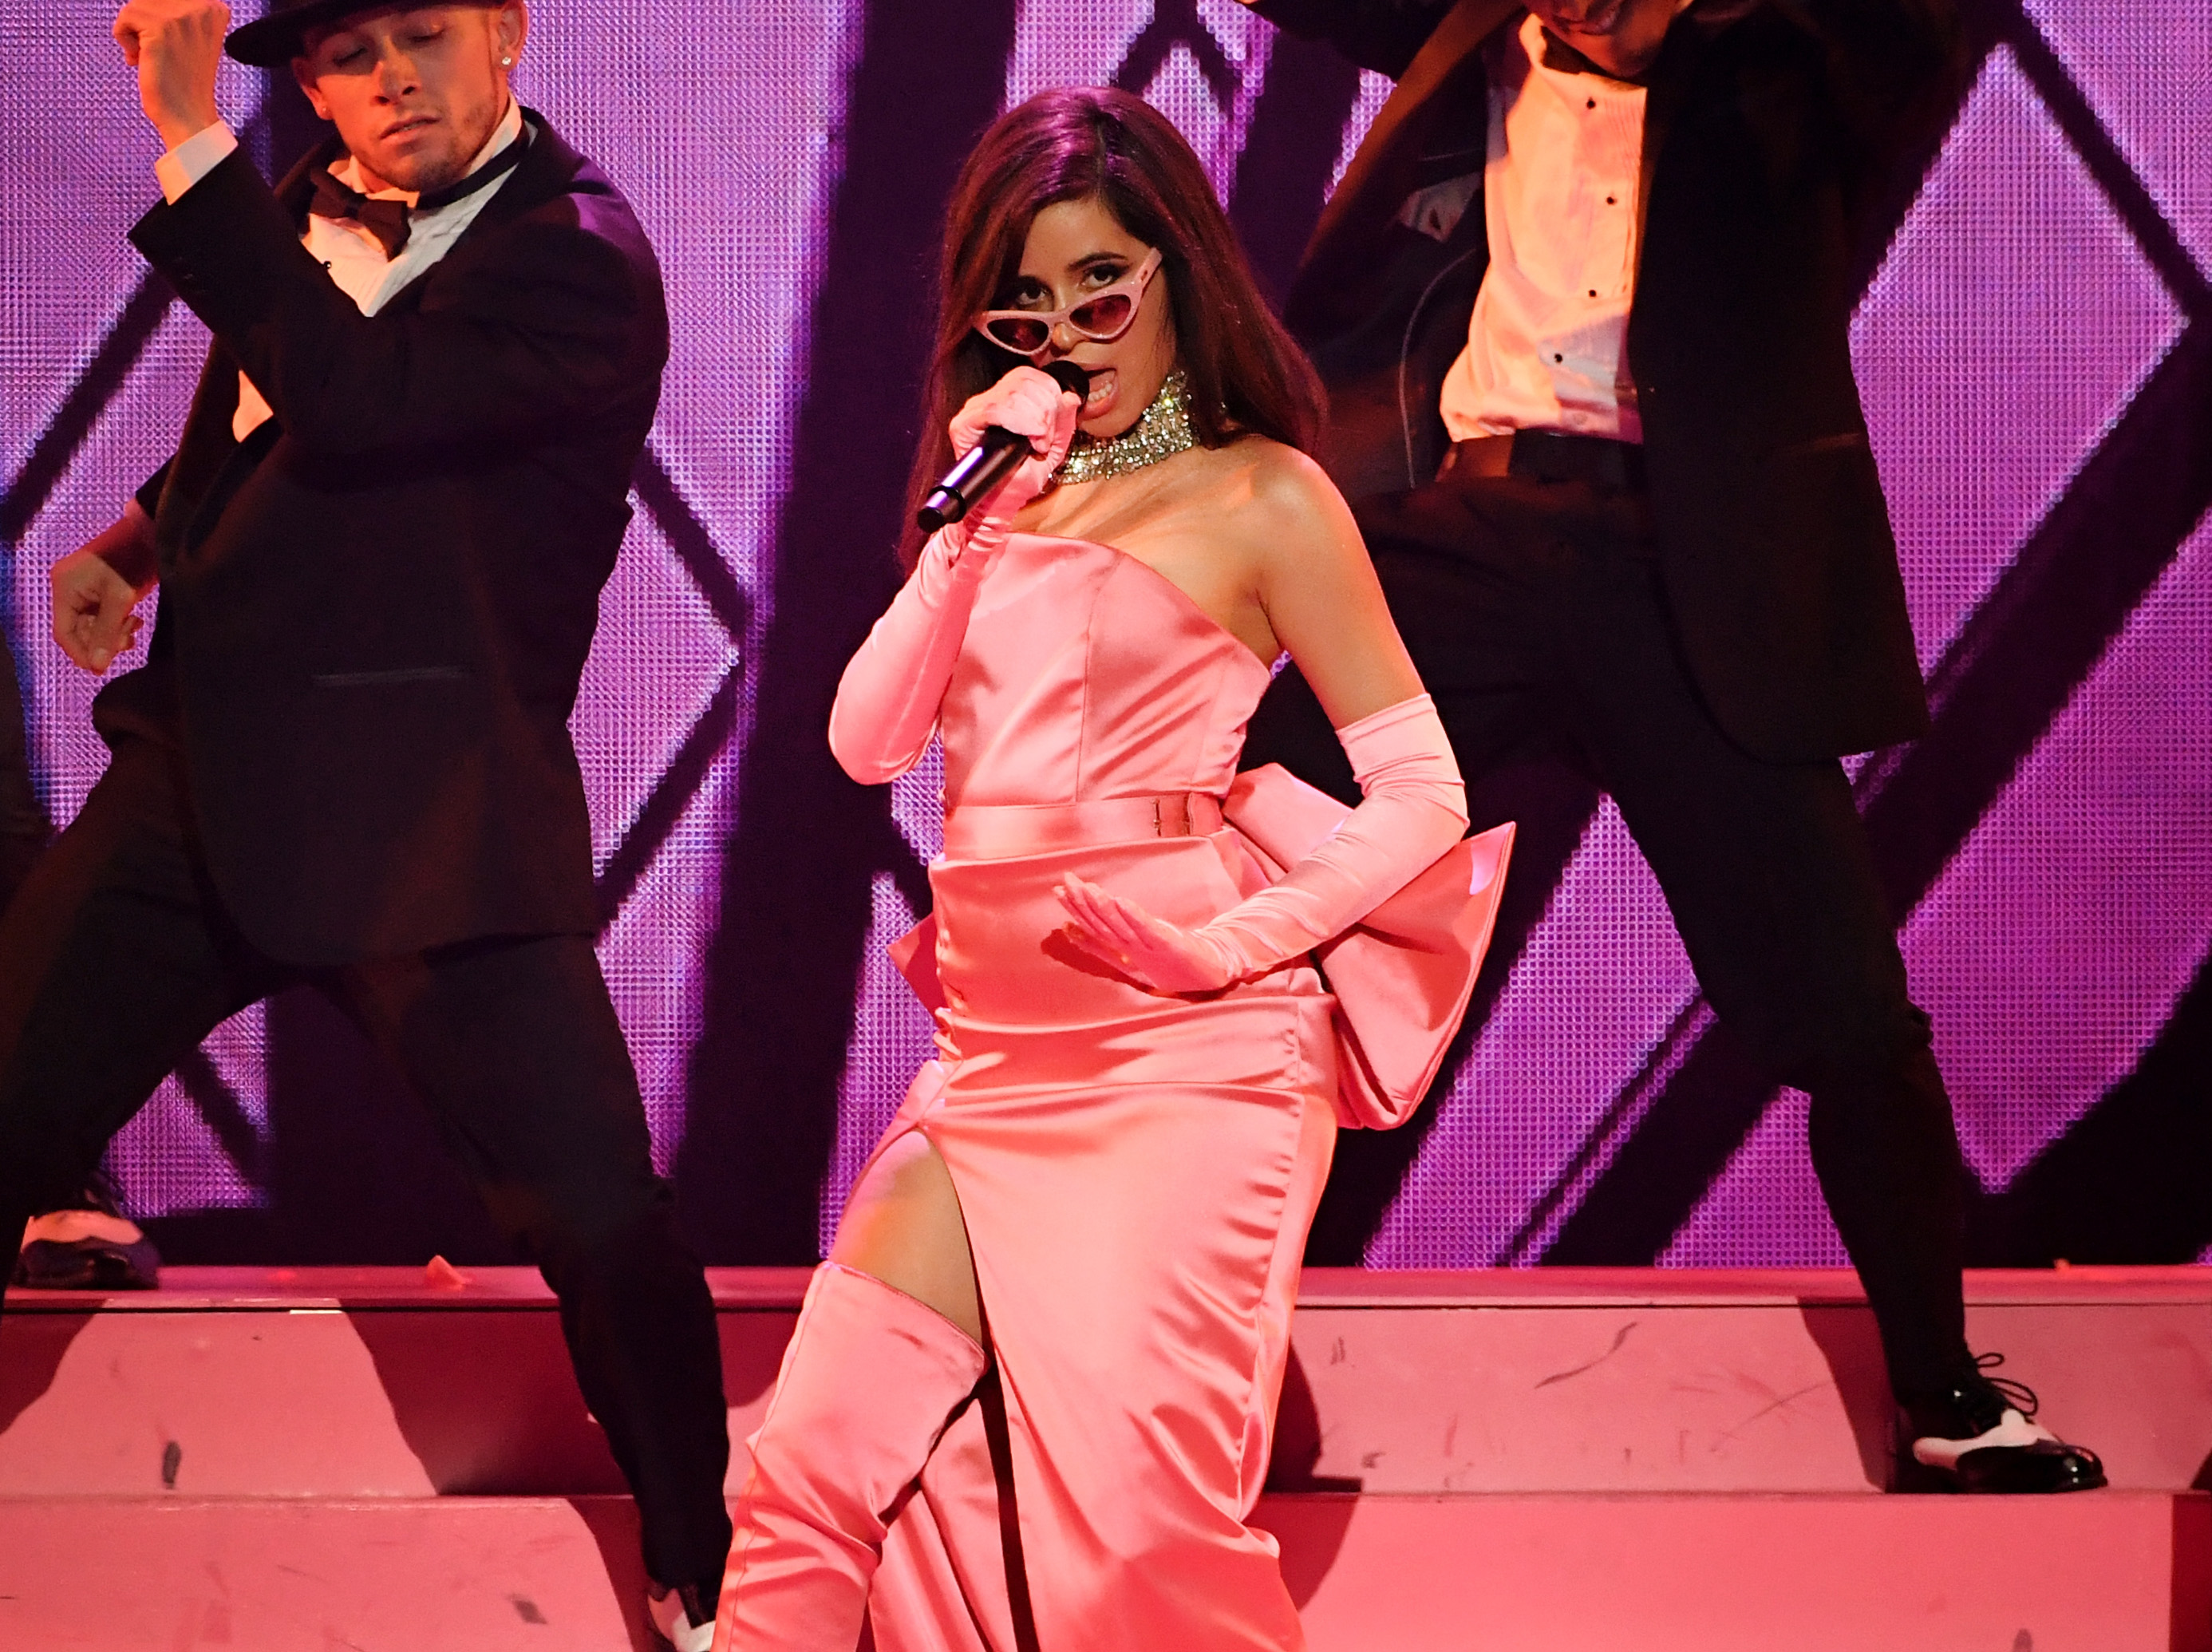 Camila-Cabello-Channels-Marilyn-Monroe-For-Performance-Of-Havana-At-2018-iHeartRadio-Music-Awards